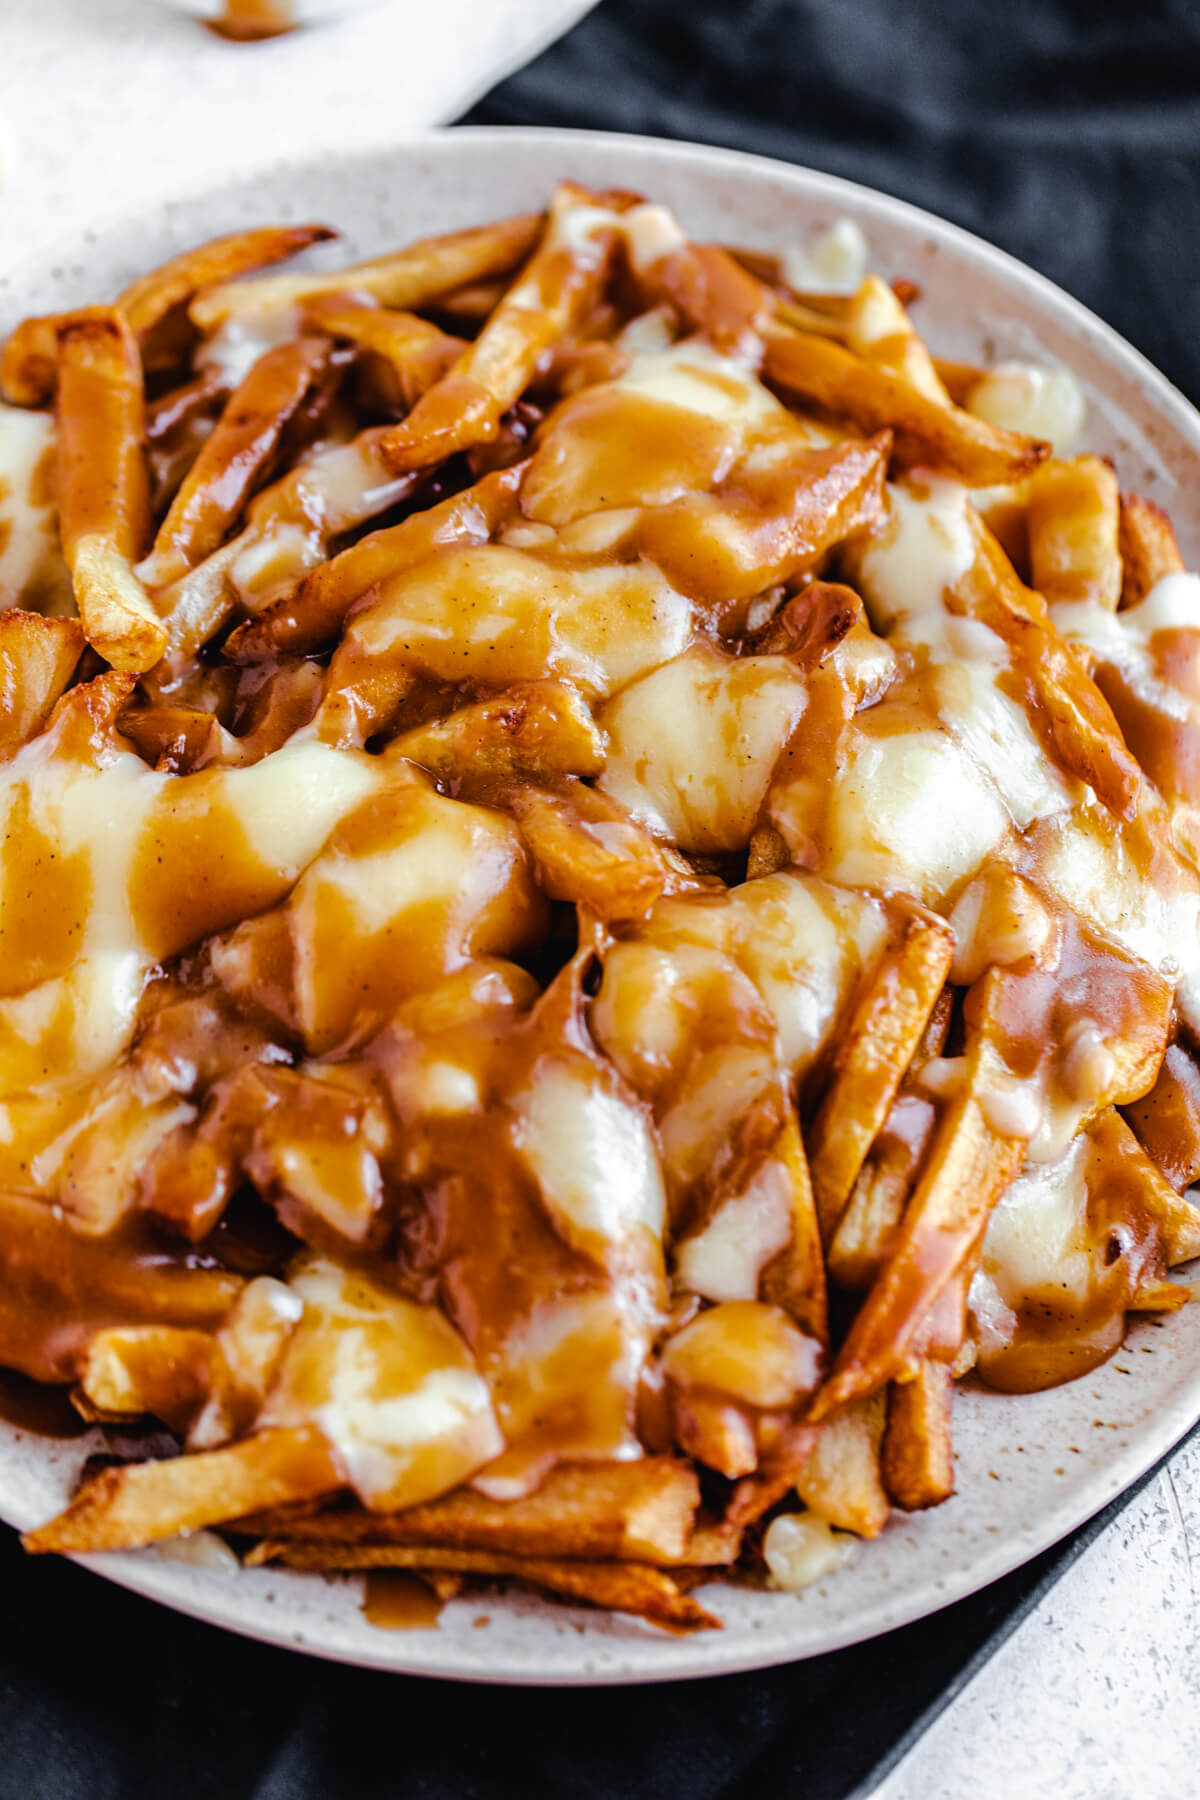 close up of fries, melted cheese and gravy on a round serving platter